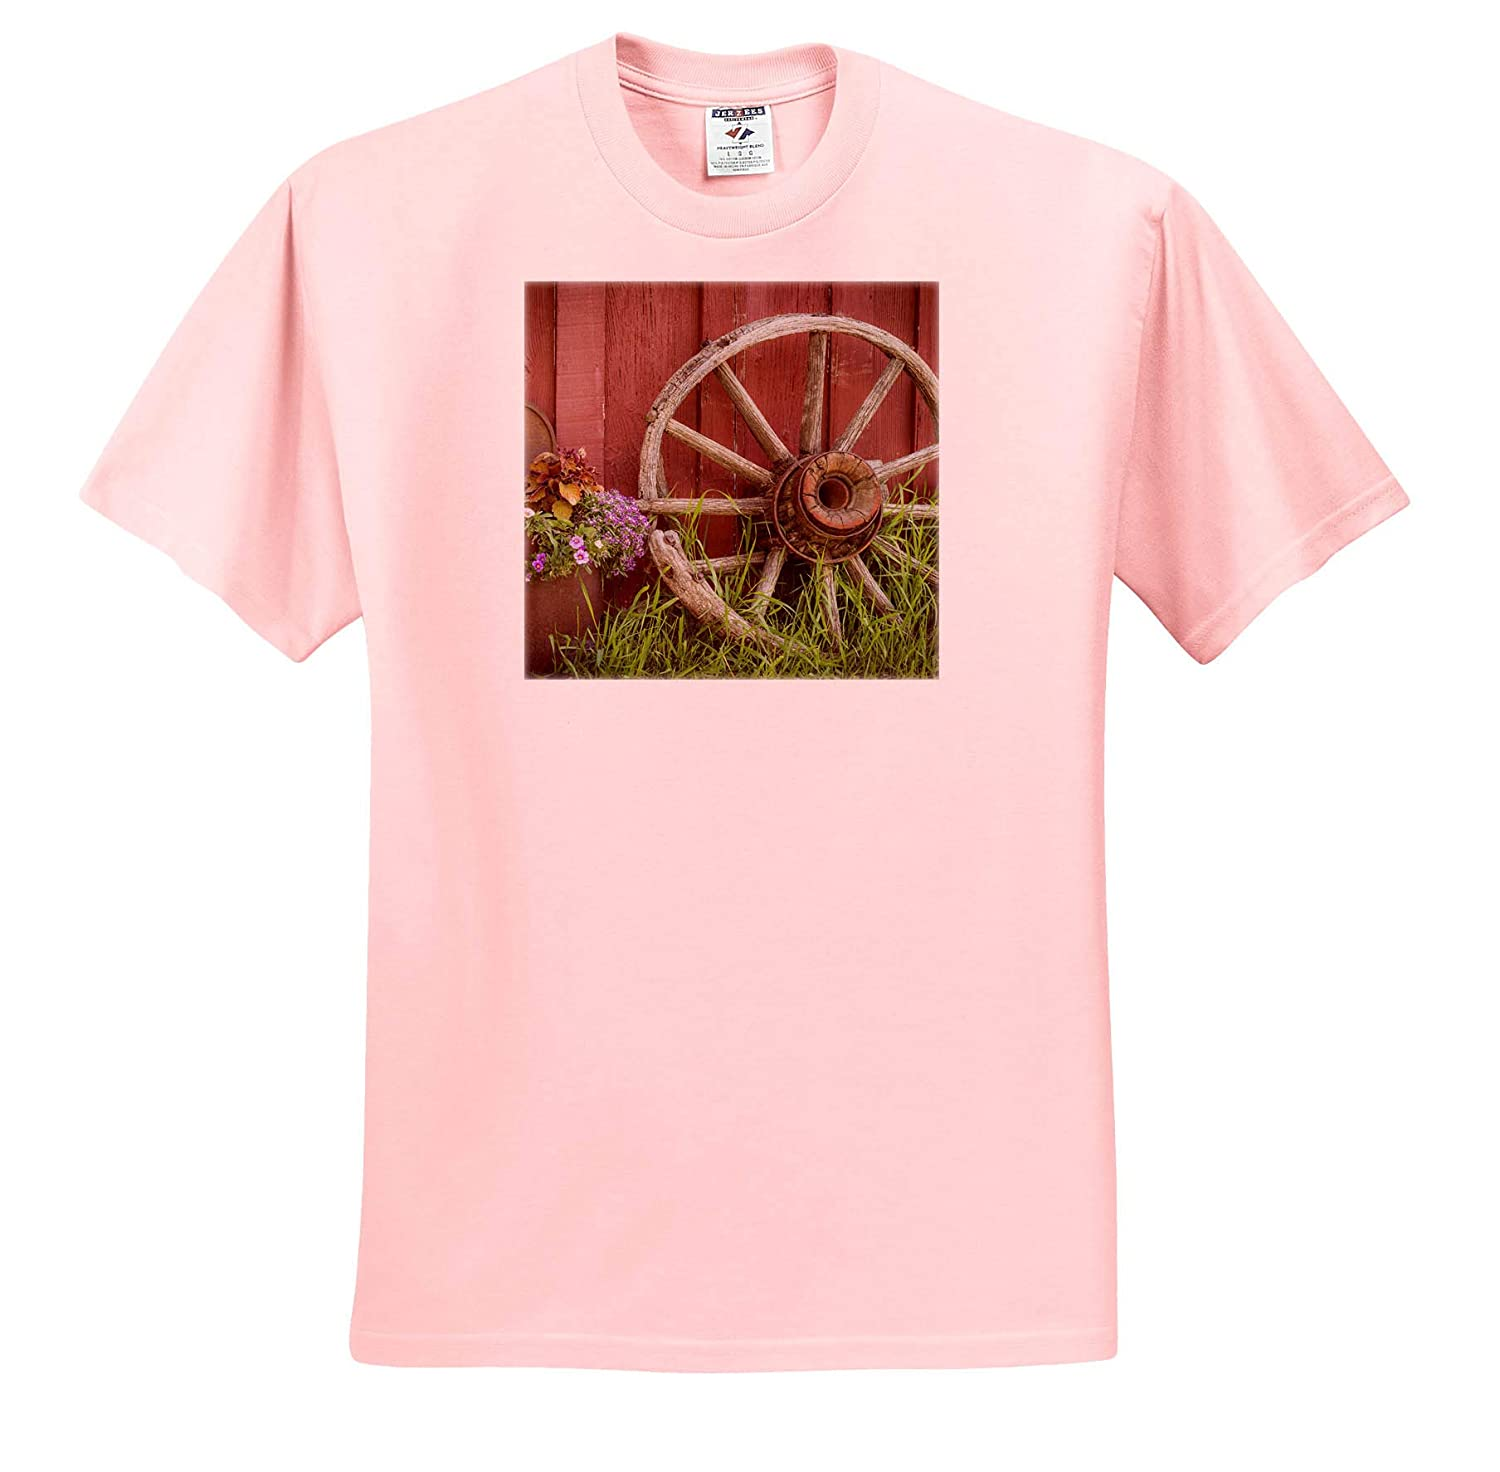 - Adult T-Shirt XL Vintage Wagon Wheel and Flowers Against a red barn ts/_313015 Farms 3dRose Danita Delimont